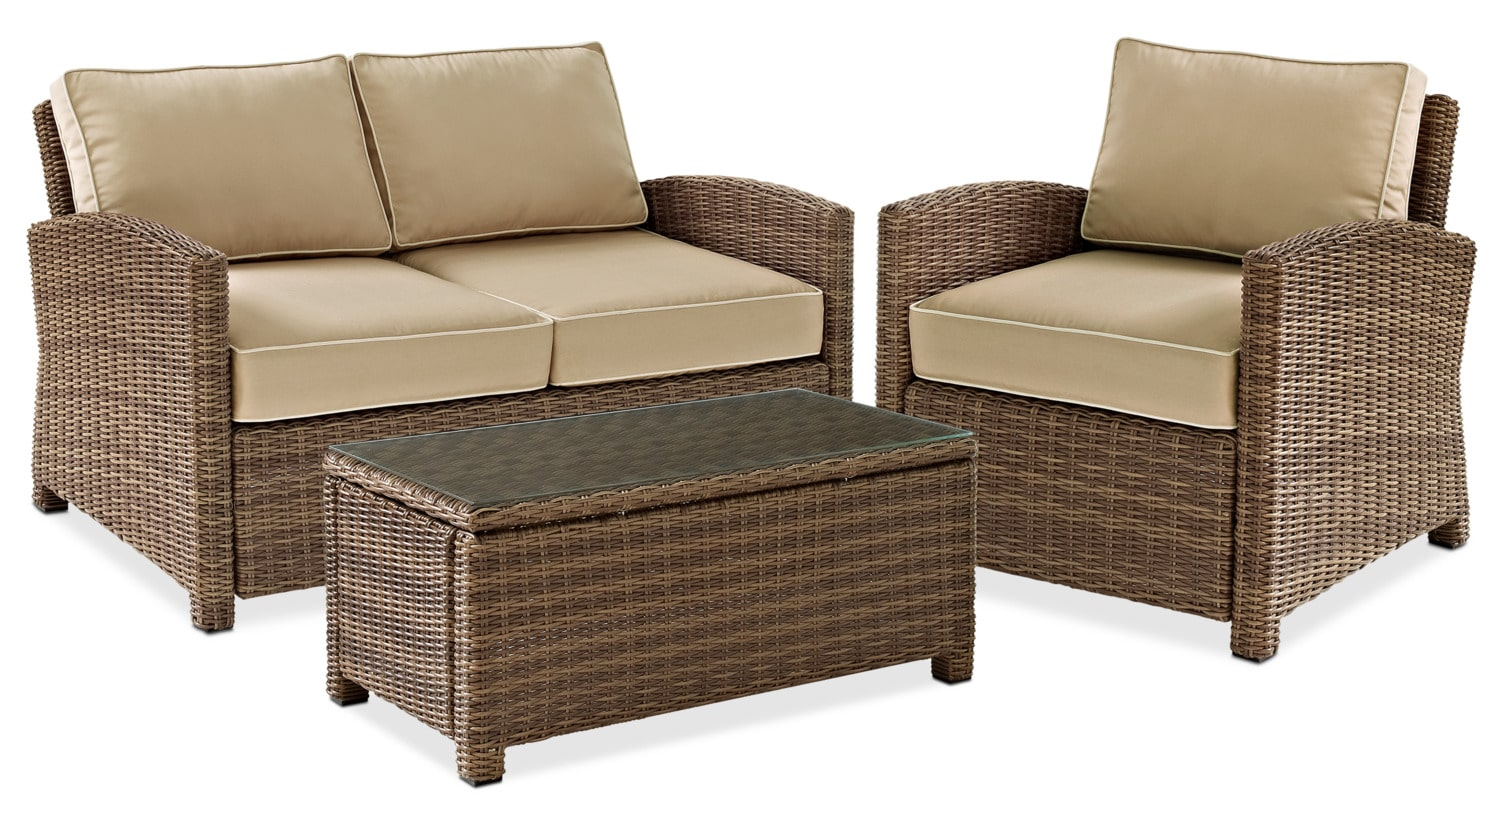 Outdoor Furniture - Destin Outdoor Loveseat, Chair and Coffee Table Set